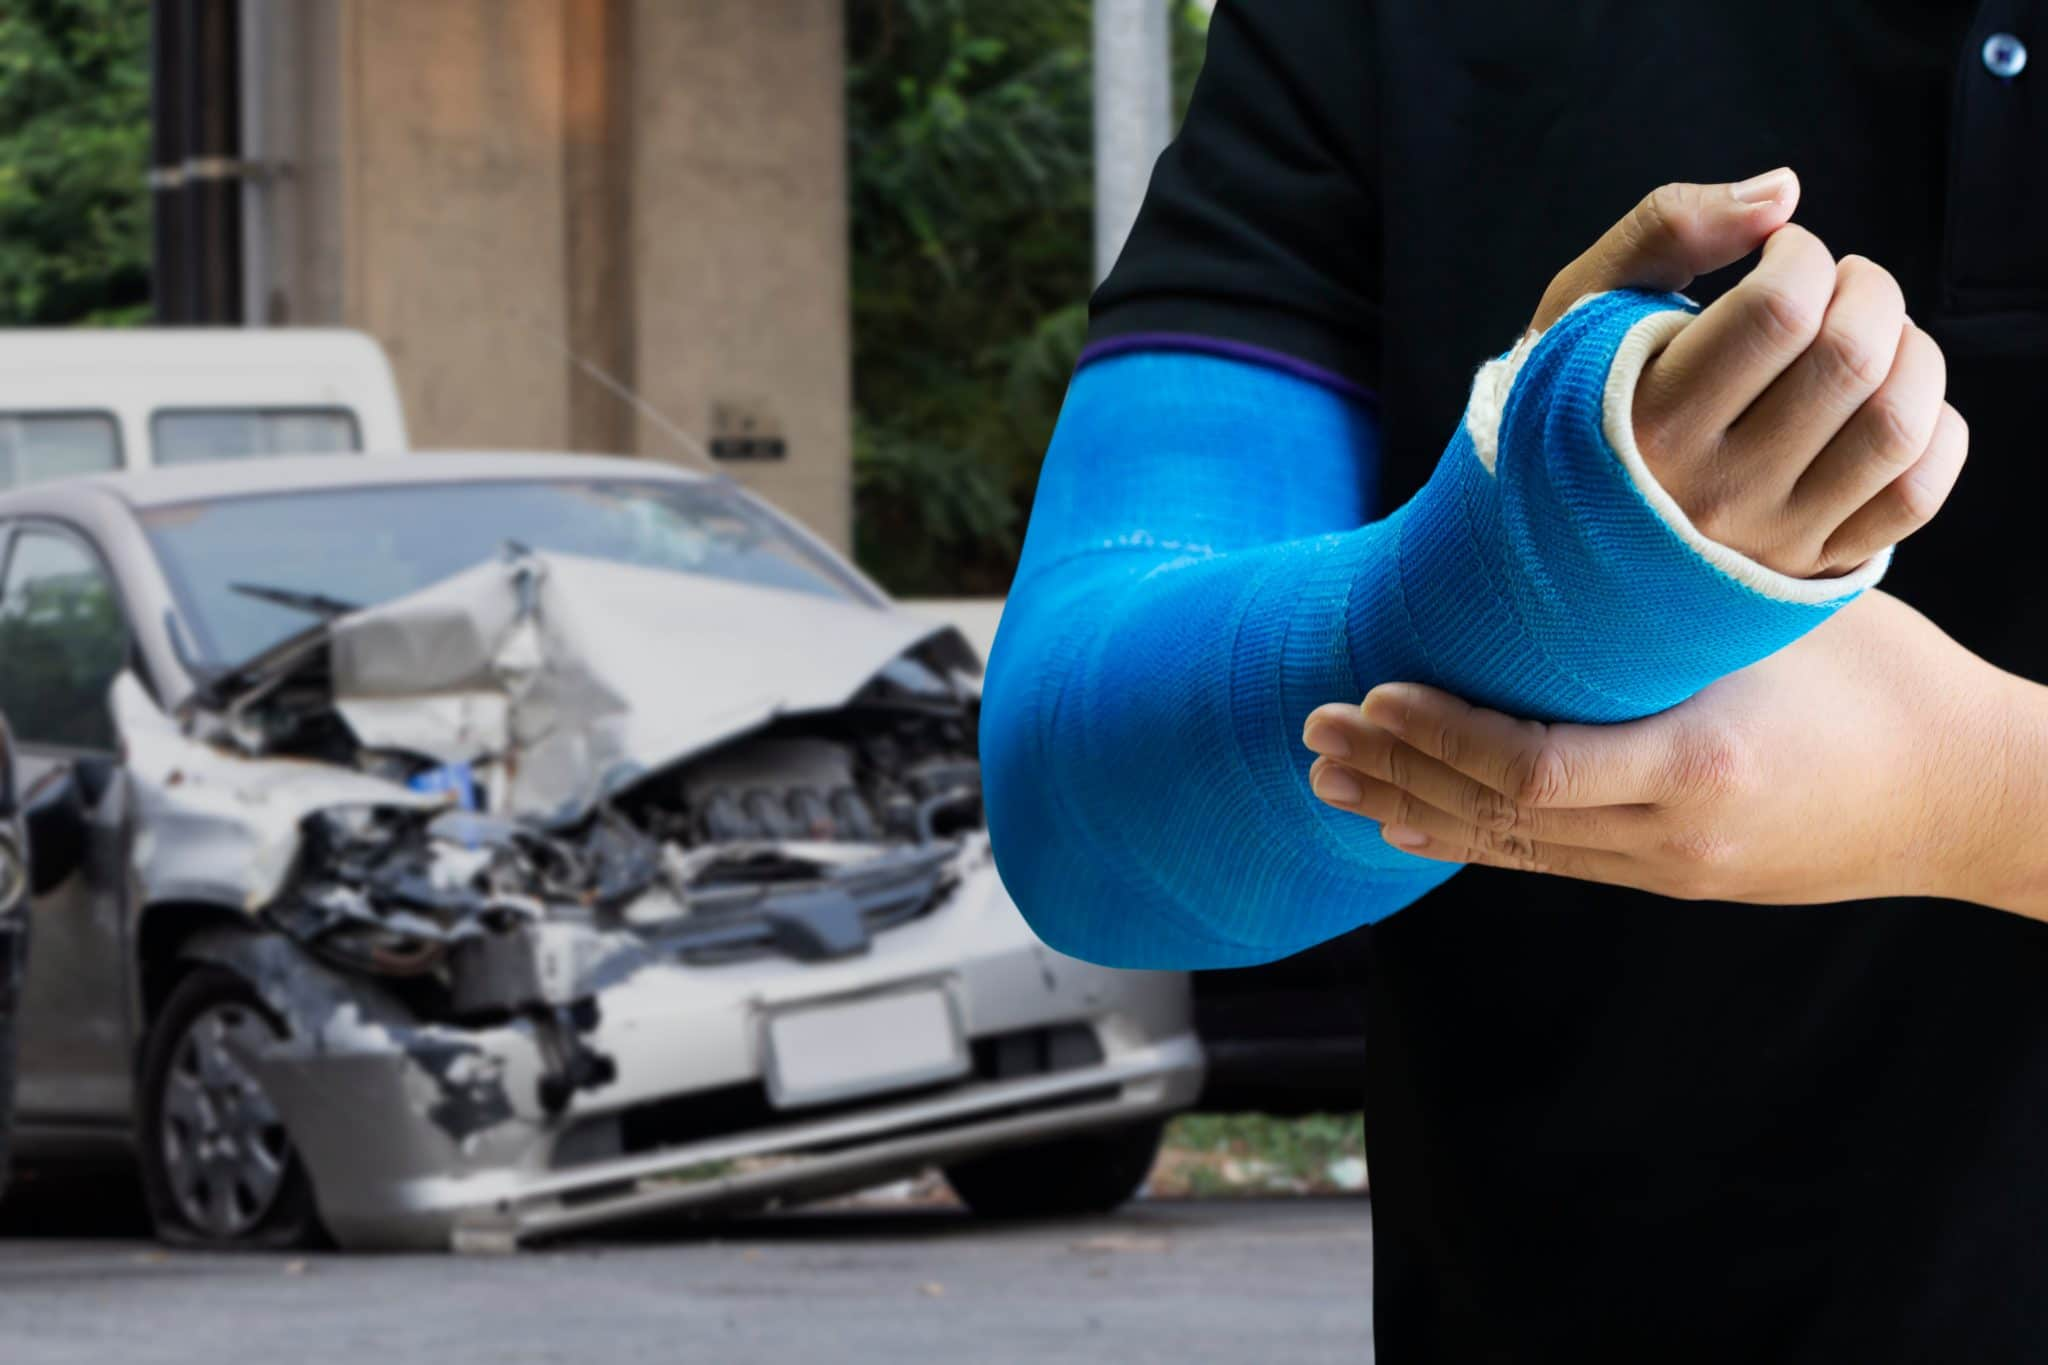 Man suffering from injury from car accident